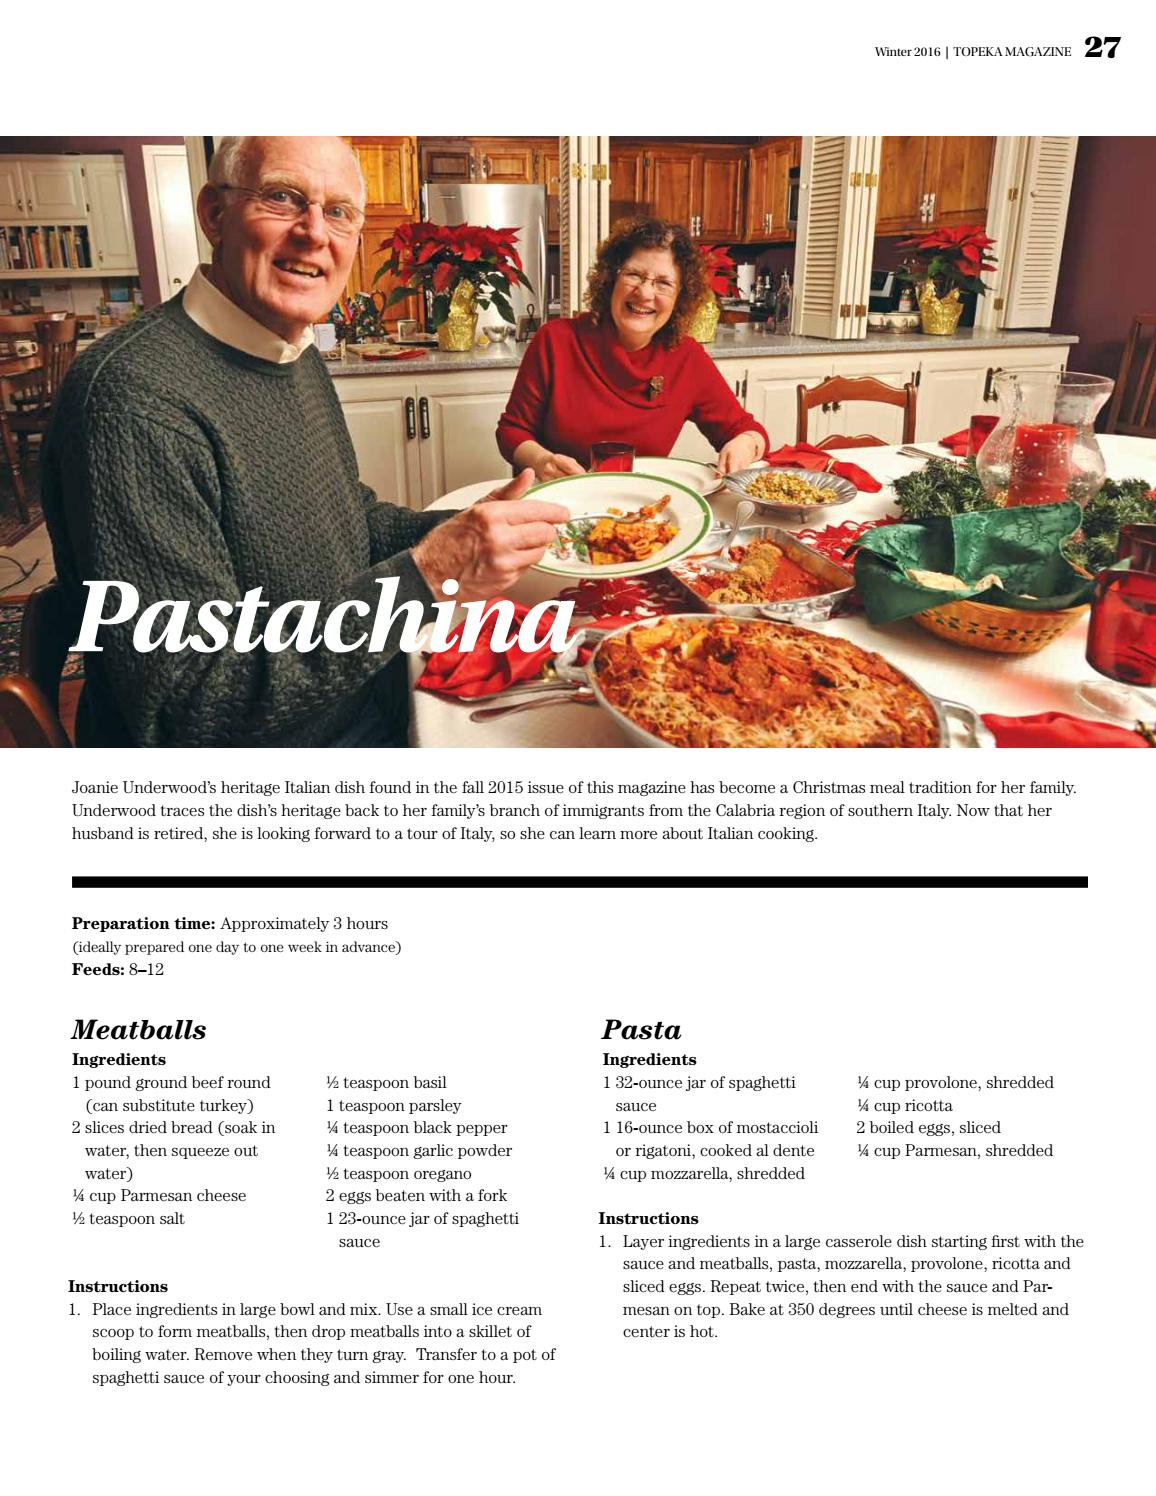 10-Year Anniversary Food Issue   Topeka Magazine winter 2016 by ...